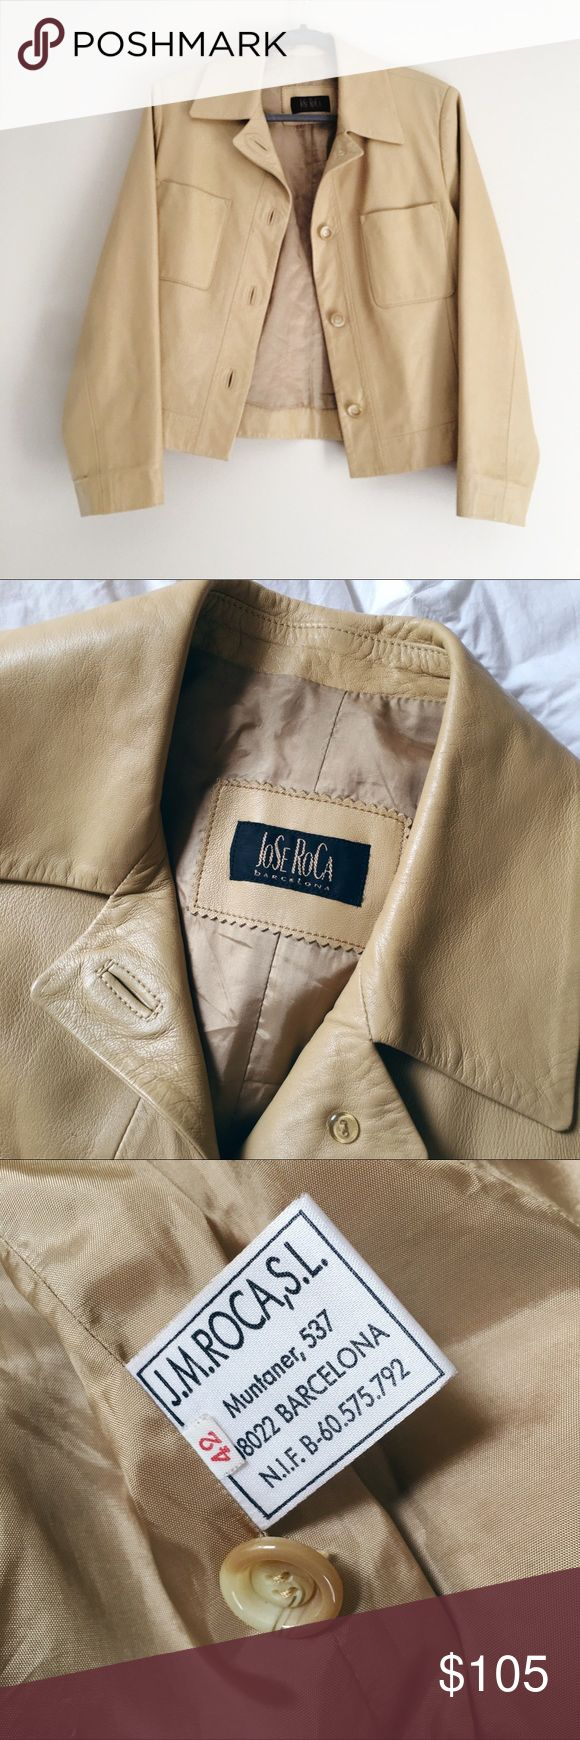 Jose RoCa Barcelona Leather Jacket Gorgeous quality smooth leather jacket from Barcelona! Cool retro style in a light tan color. European size 42, fits like a M/L. Jose RoCa Jackets & Coats